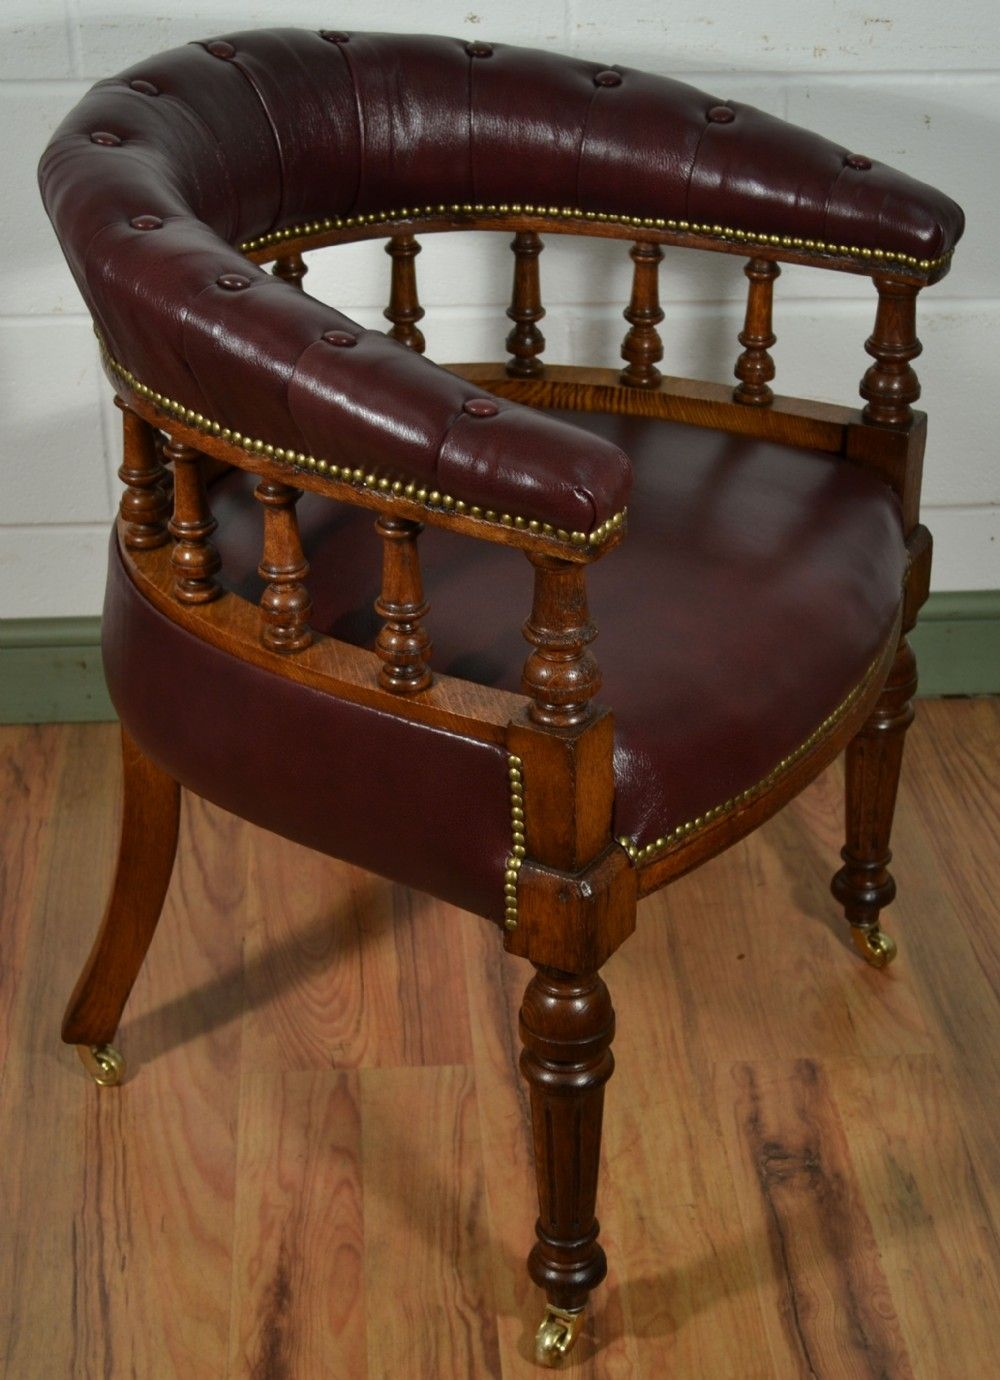 Captains Chair for Sale – Nothing More Special than Seafaring Style - Captains Chair For Sale – Nothing More Special Than Seafaring Style